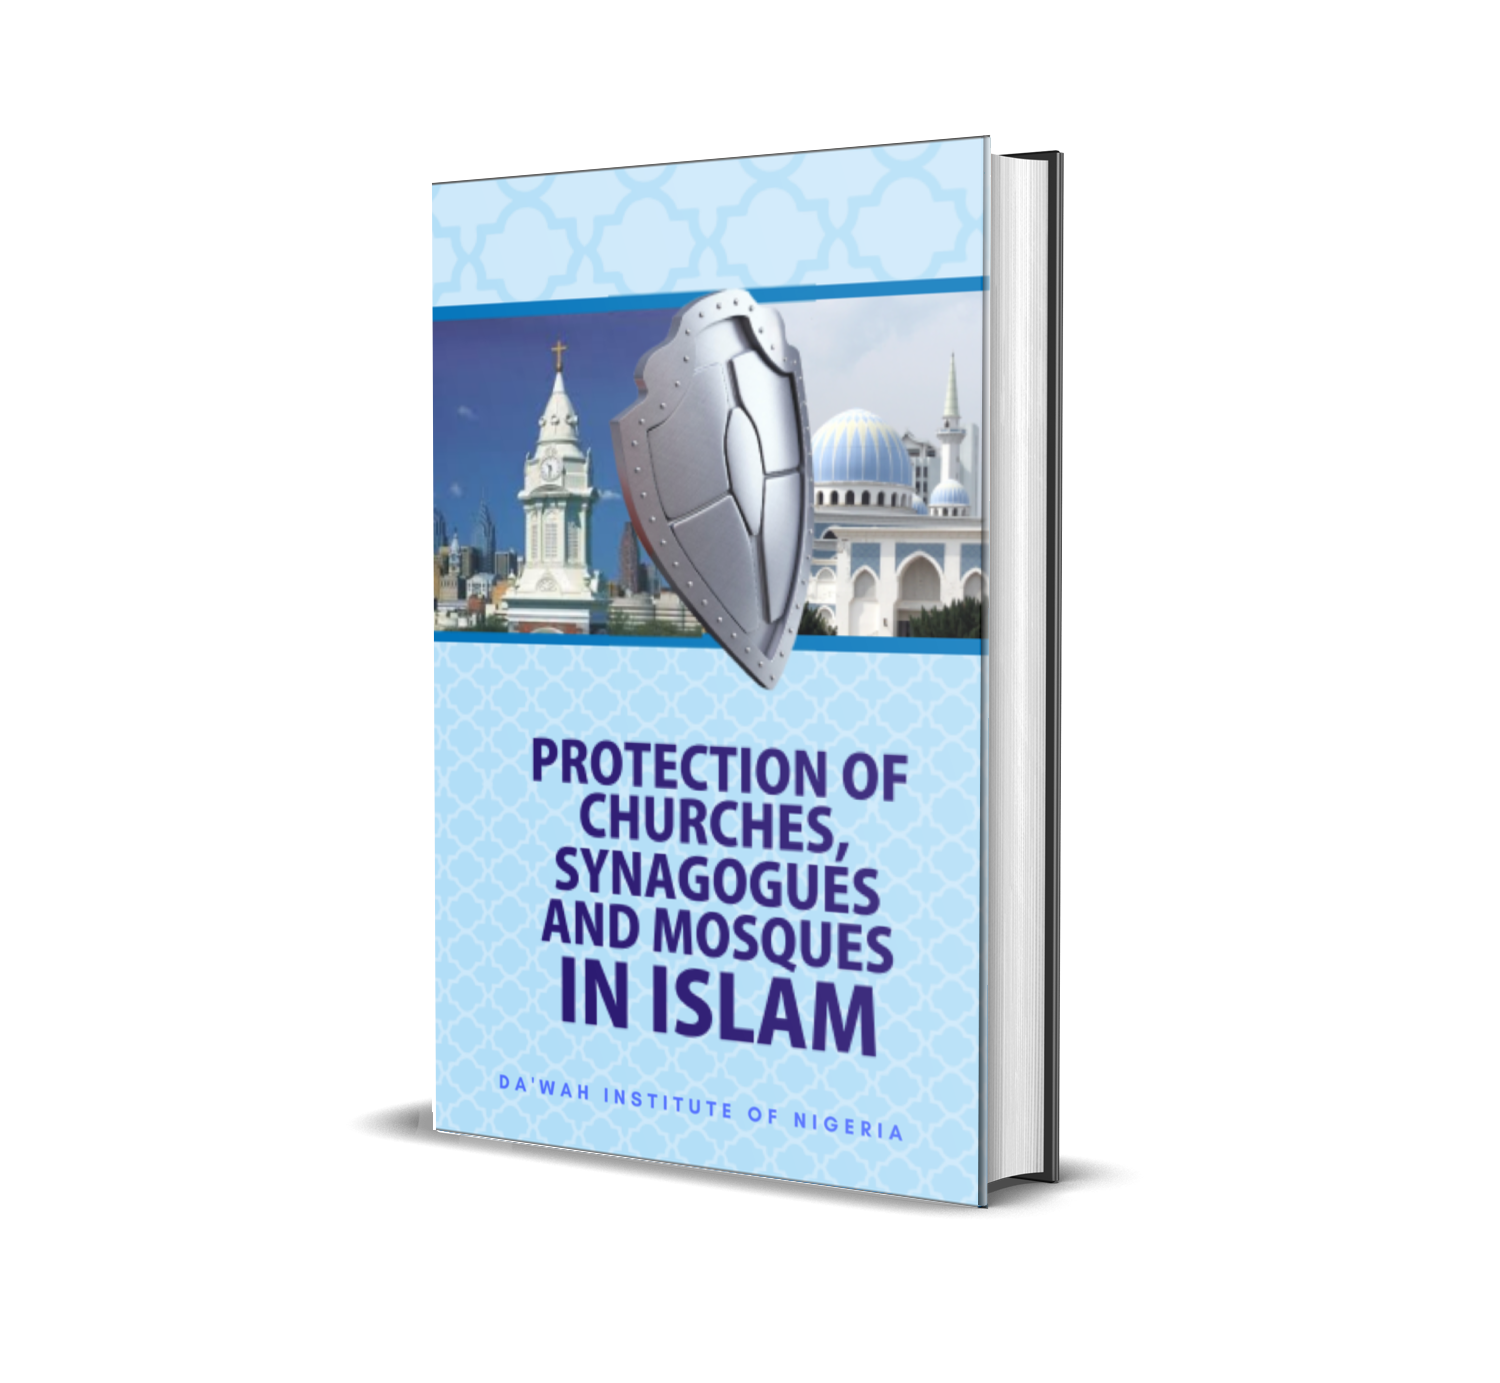 https://dawahinstitute.org/wp-content/uploads/Protection-of-Places-of-worship.png